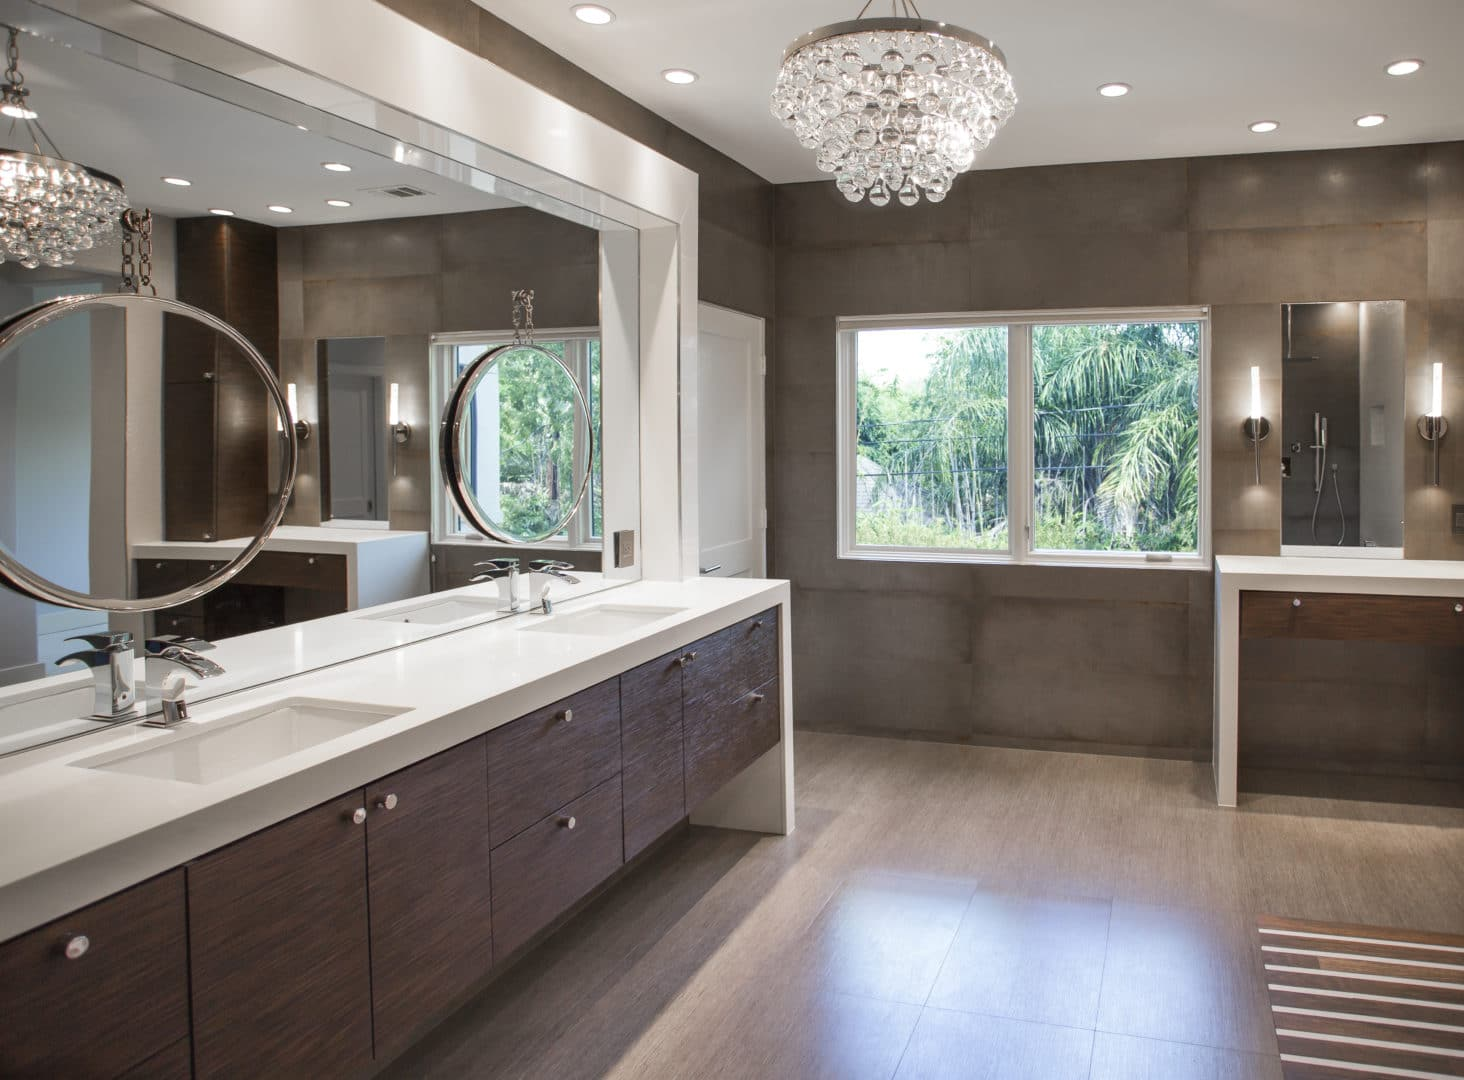 West University Master Bathroom Houston Texas 2015